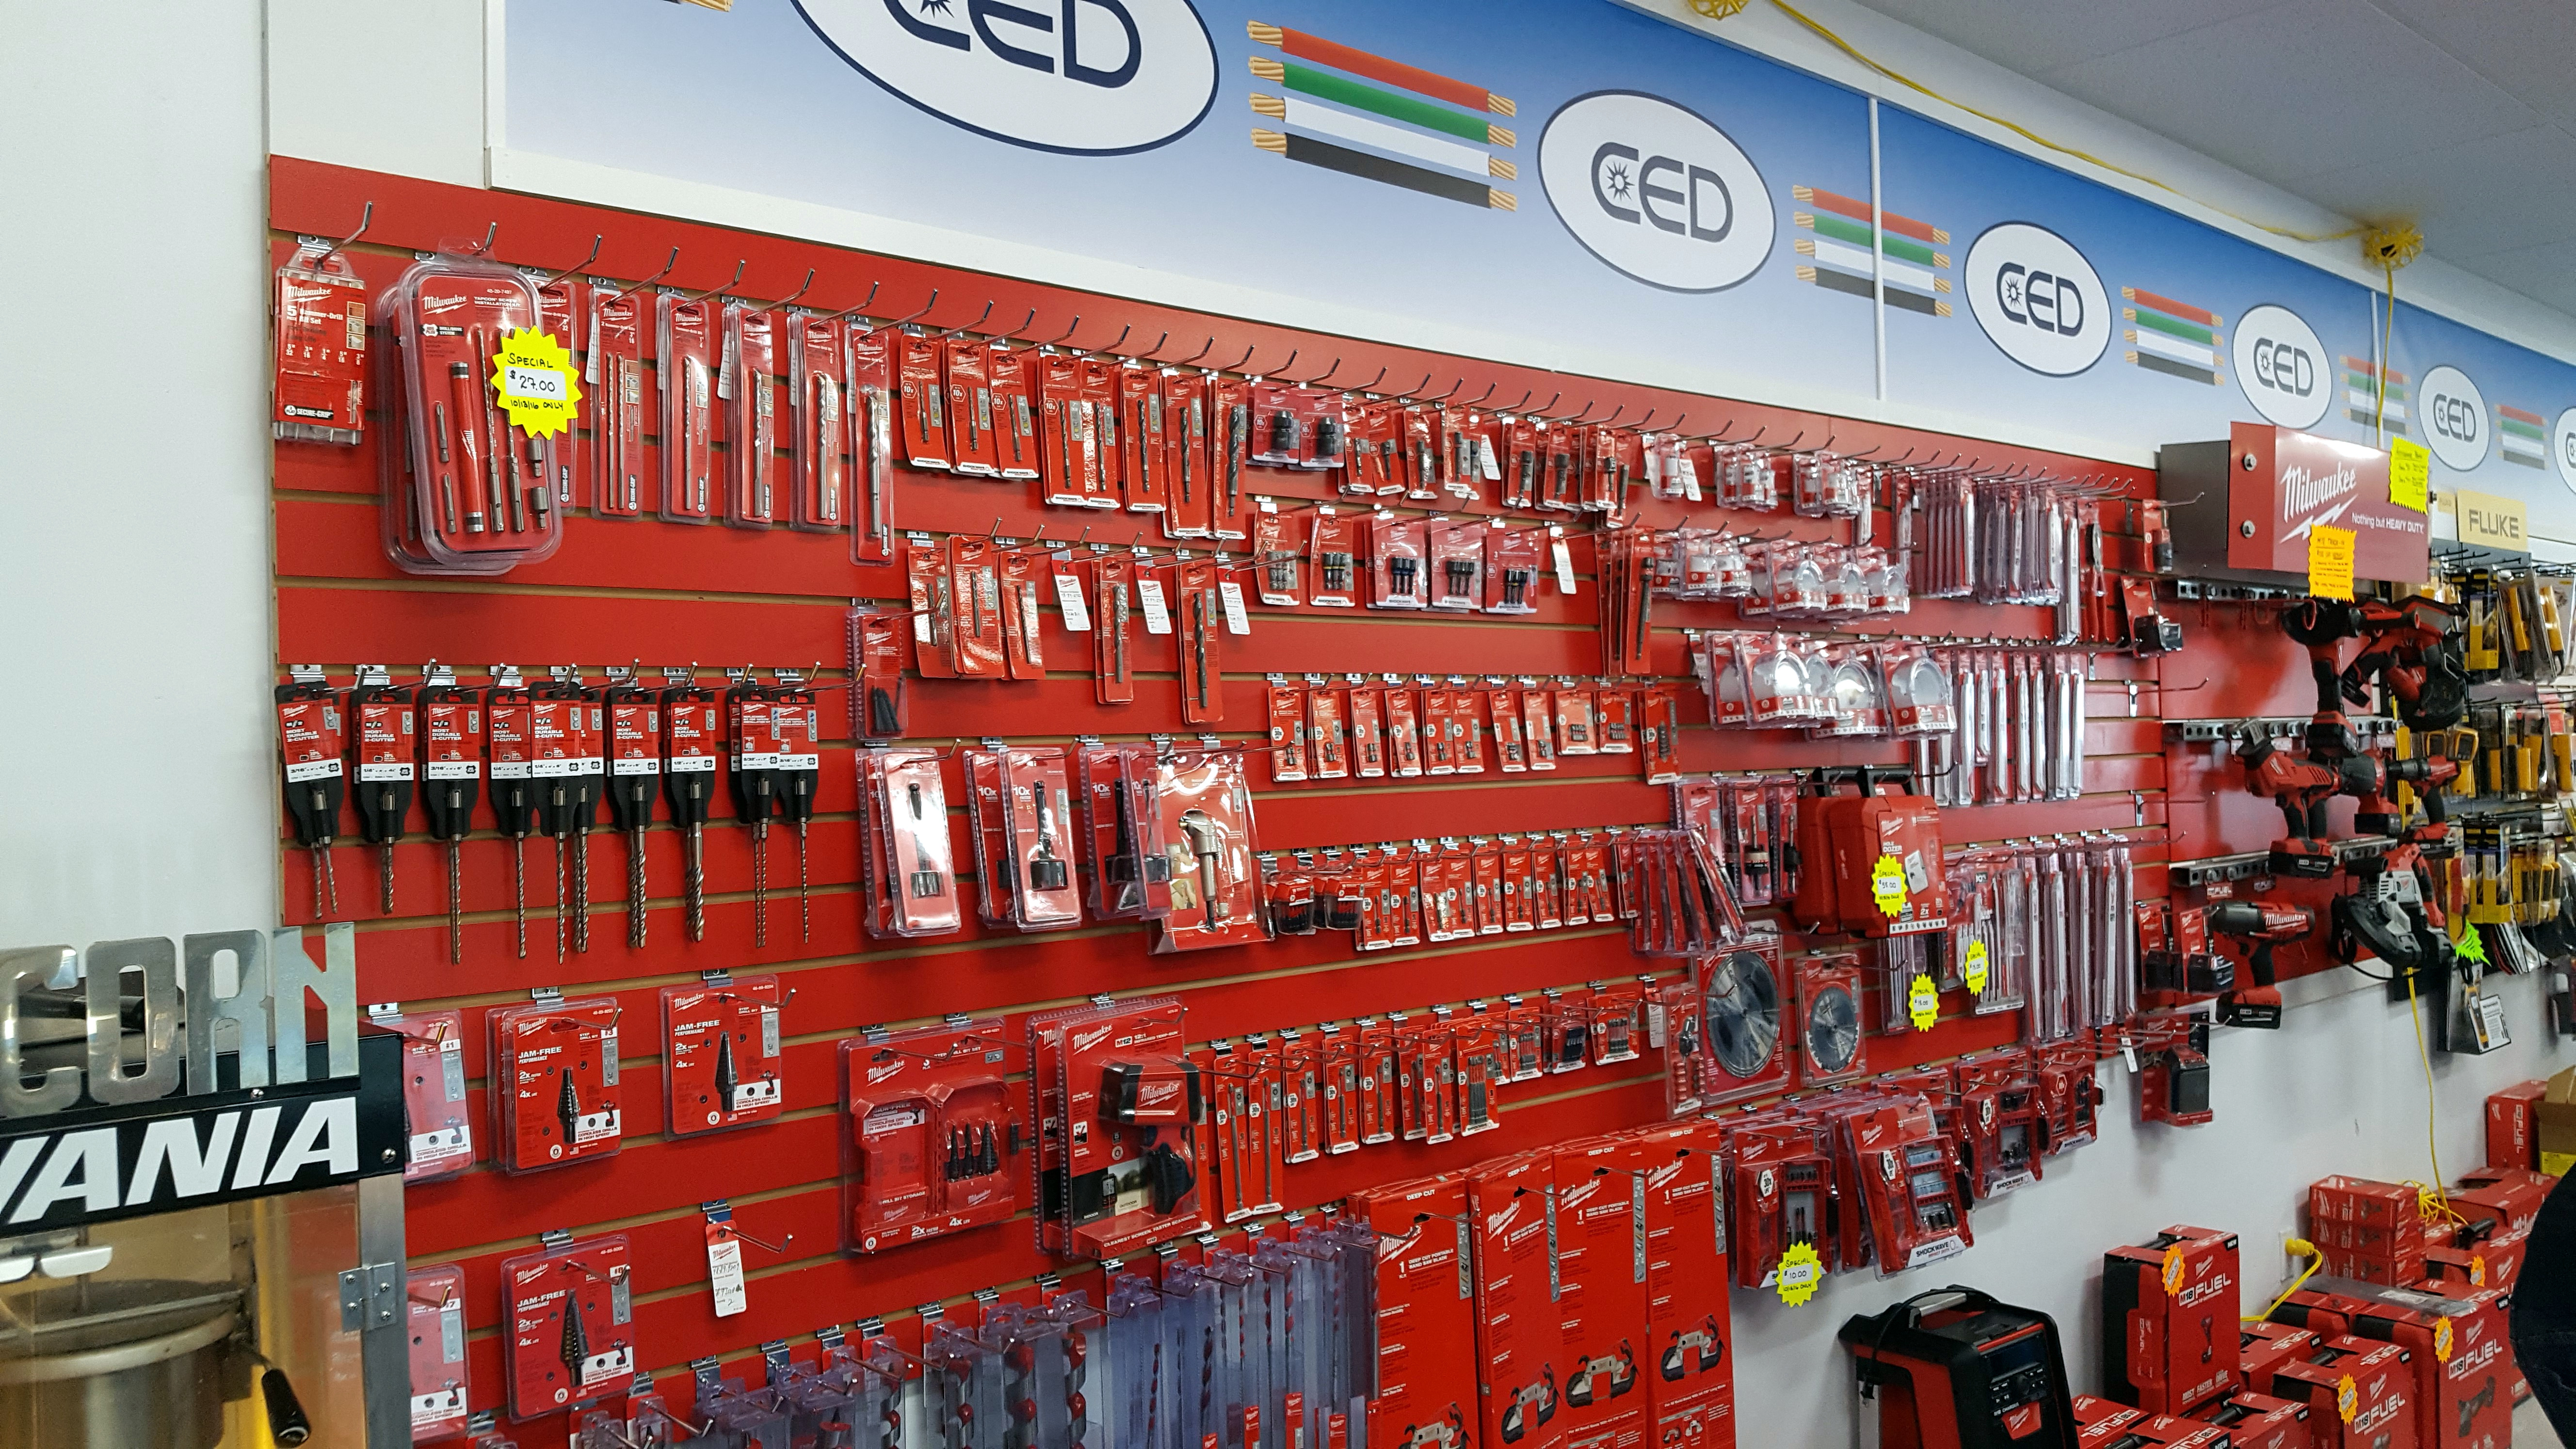 CED Clearwater Largo Electrical Supply (727) 446-0541 - Wholesale ...